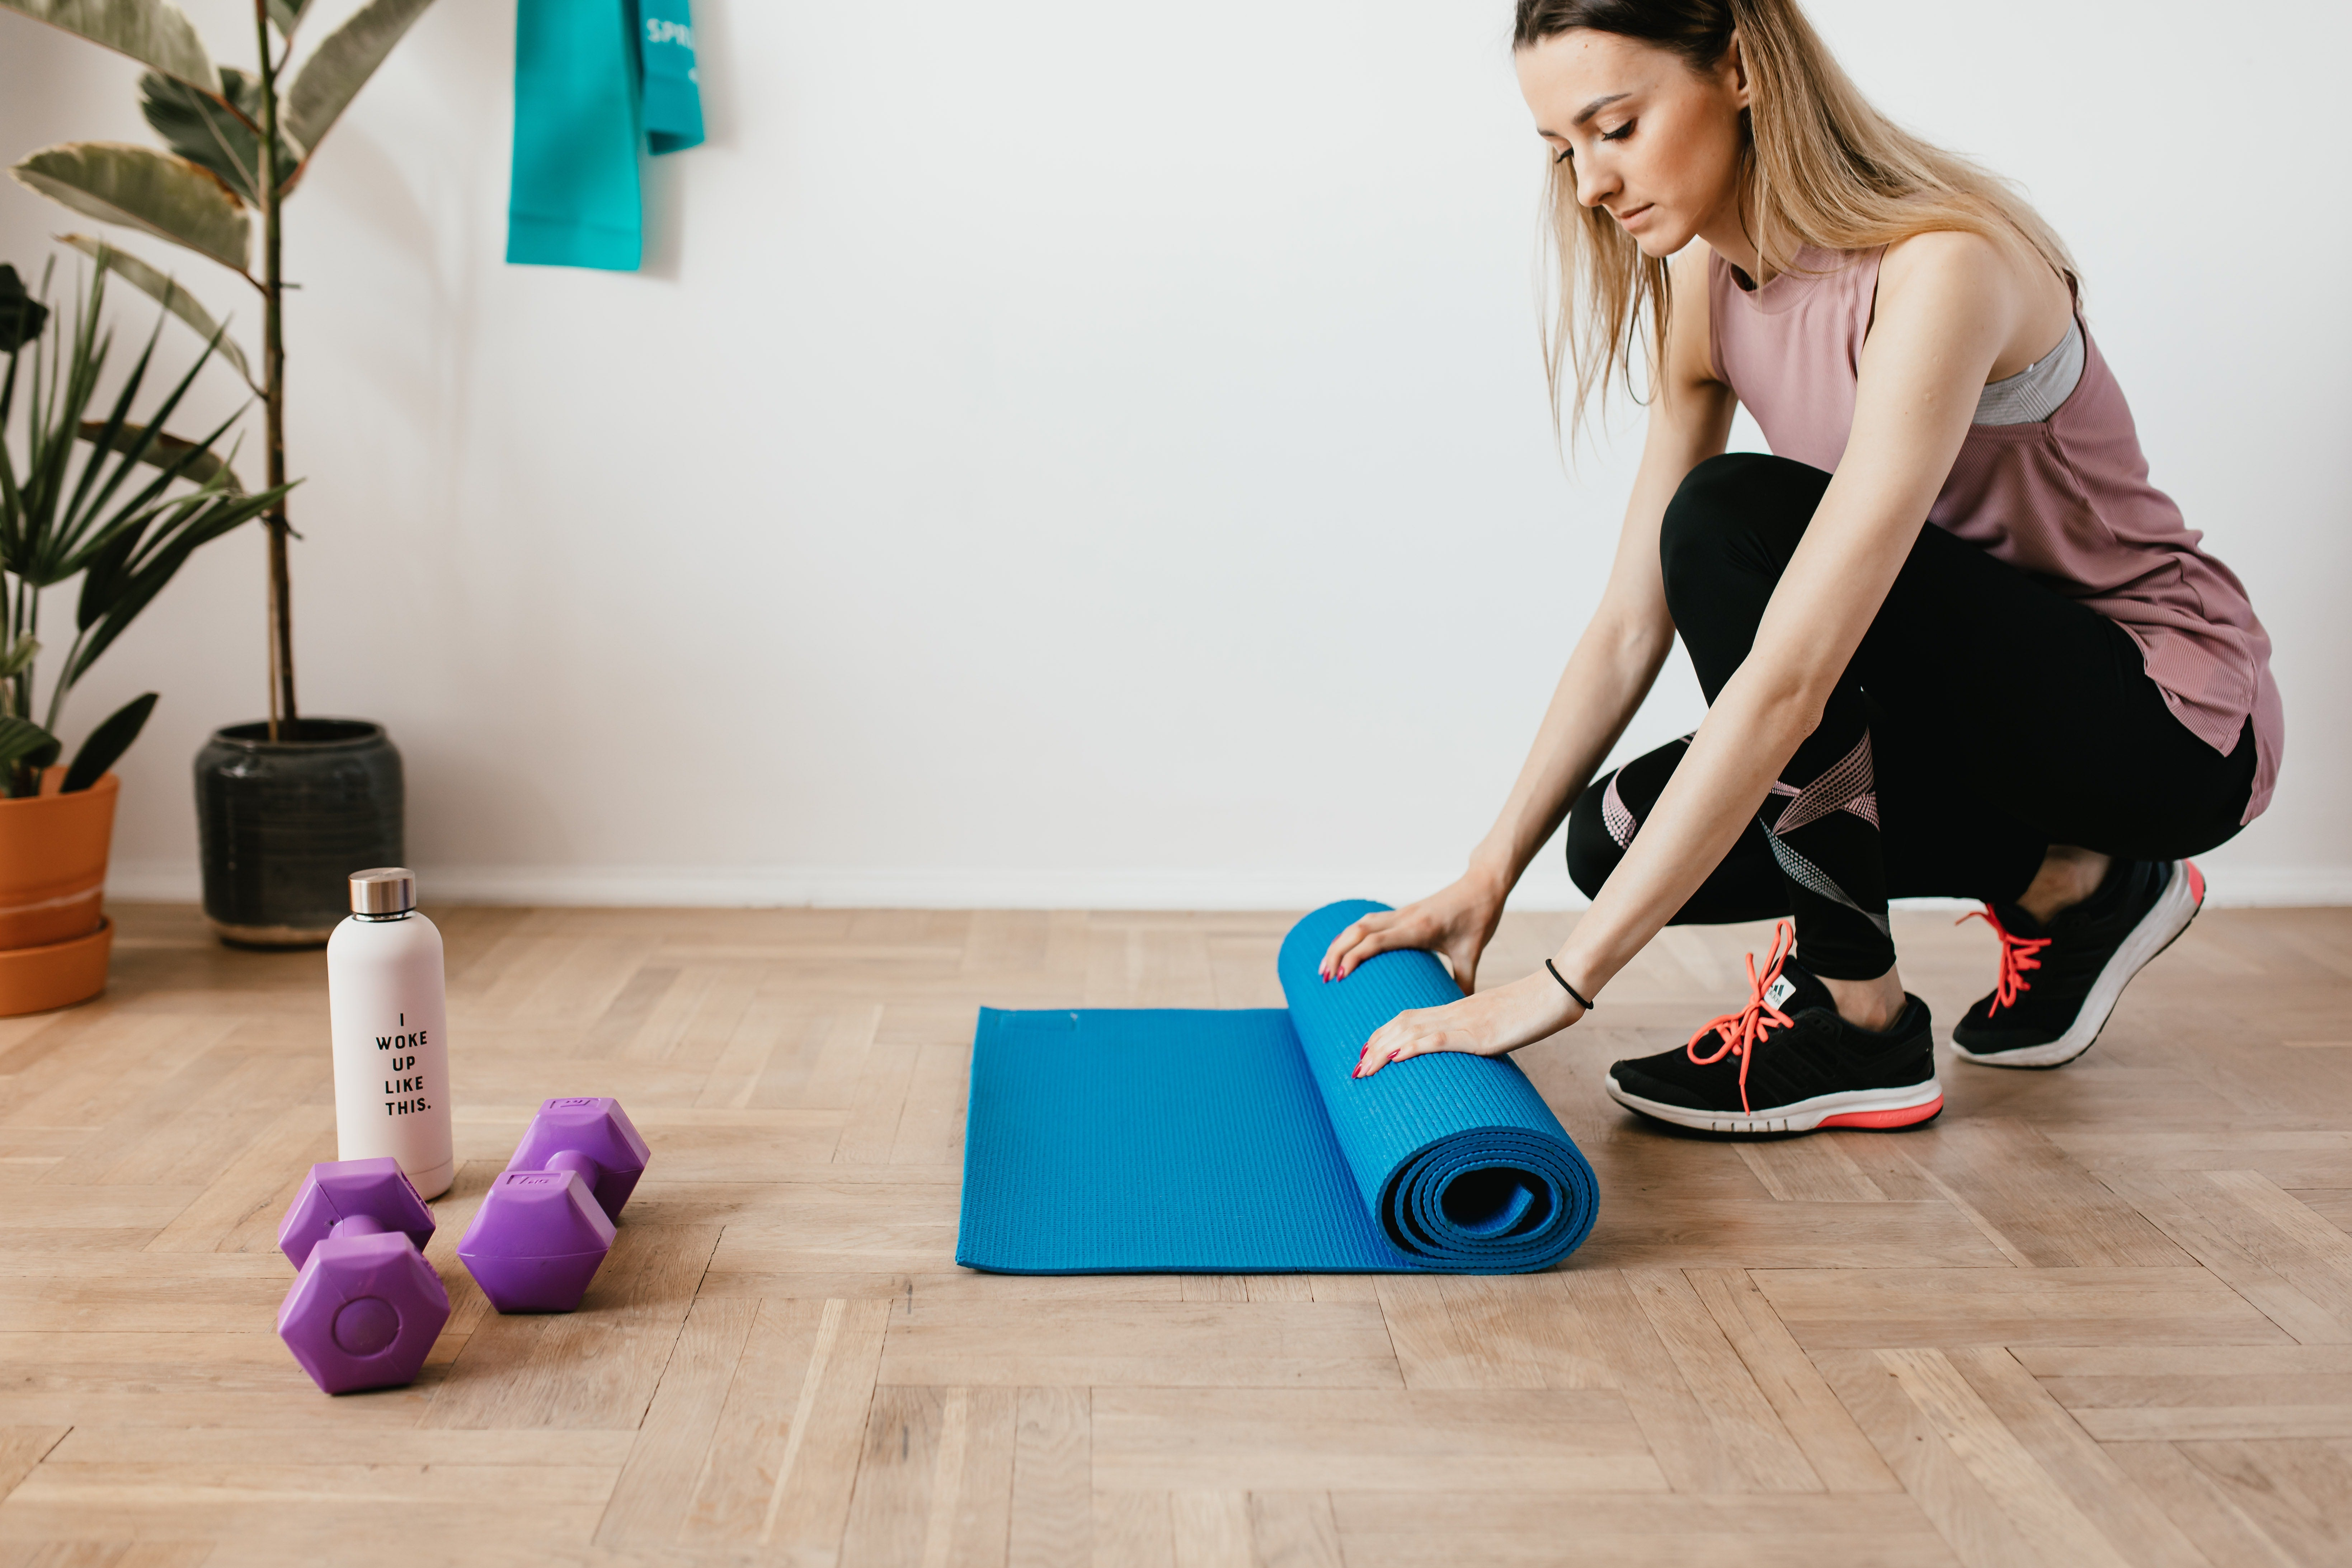 Woman getting ready to exercise